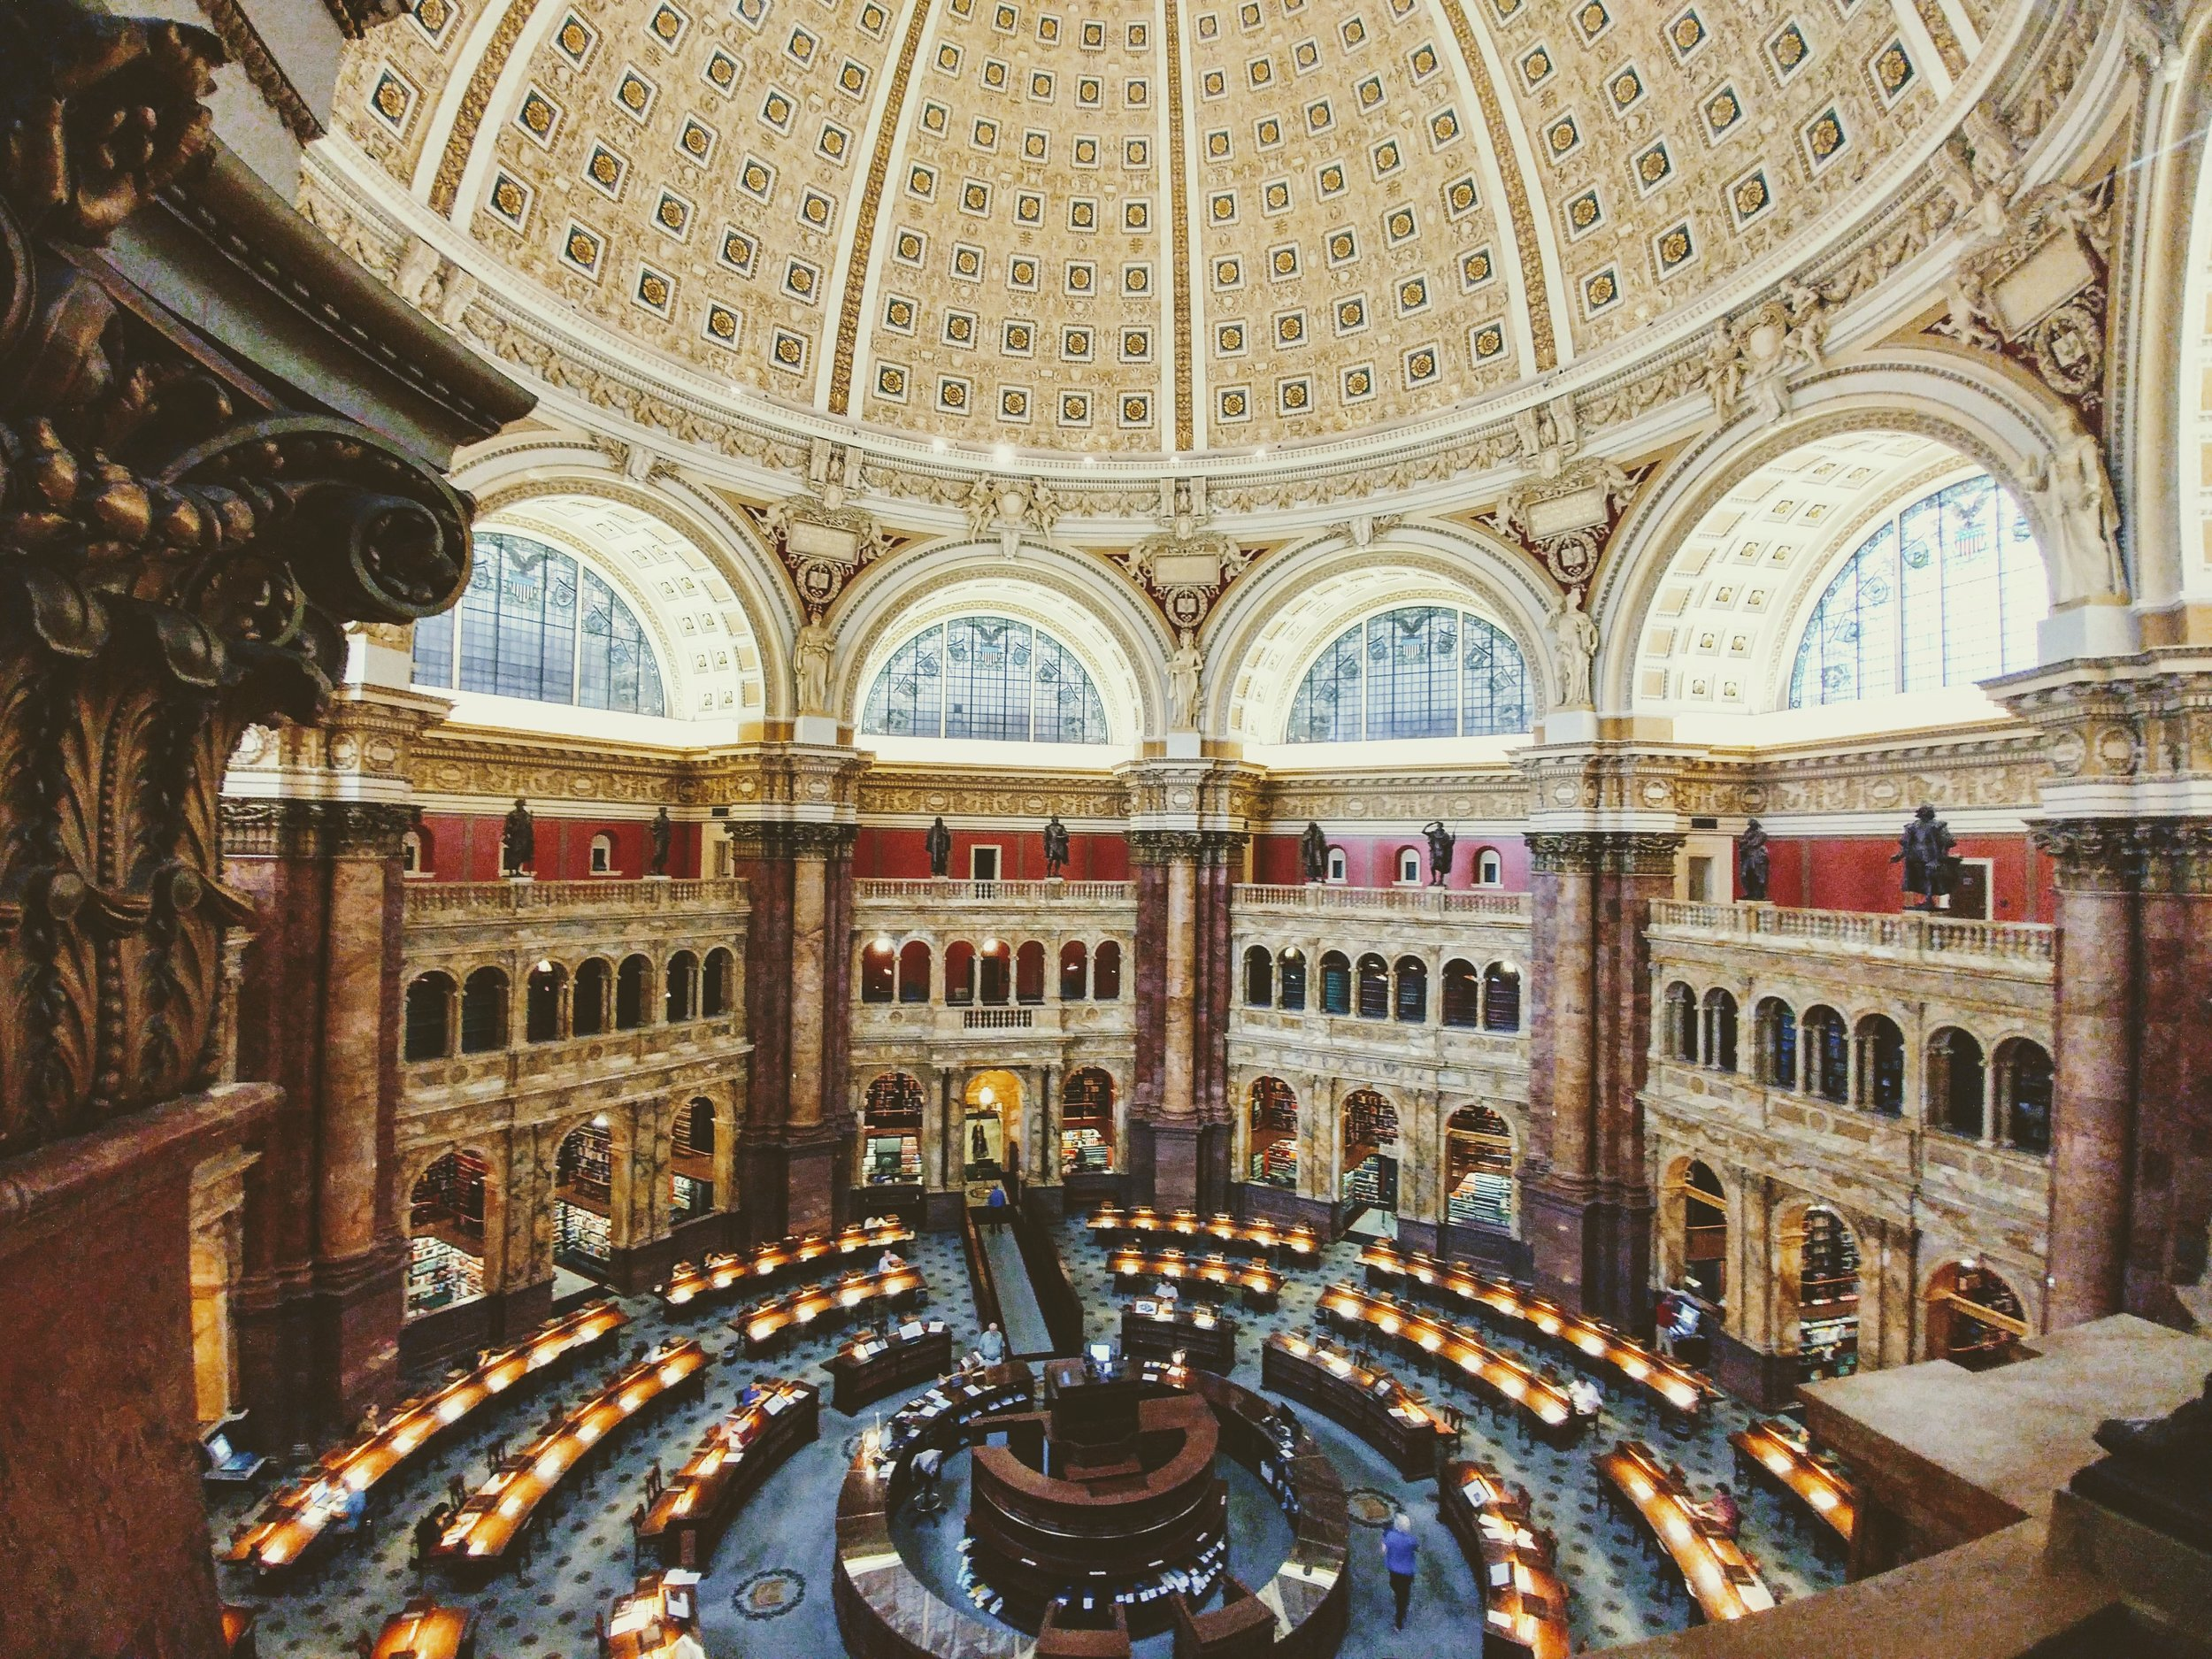 Add a visit to the historic Library of Congress to your tour.